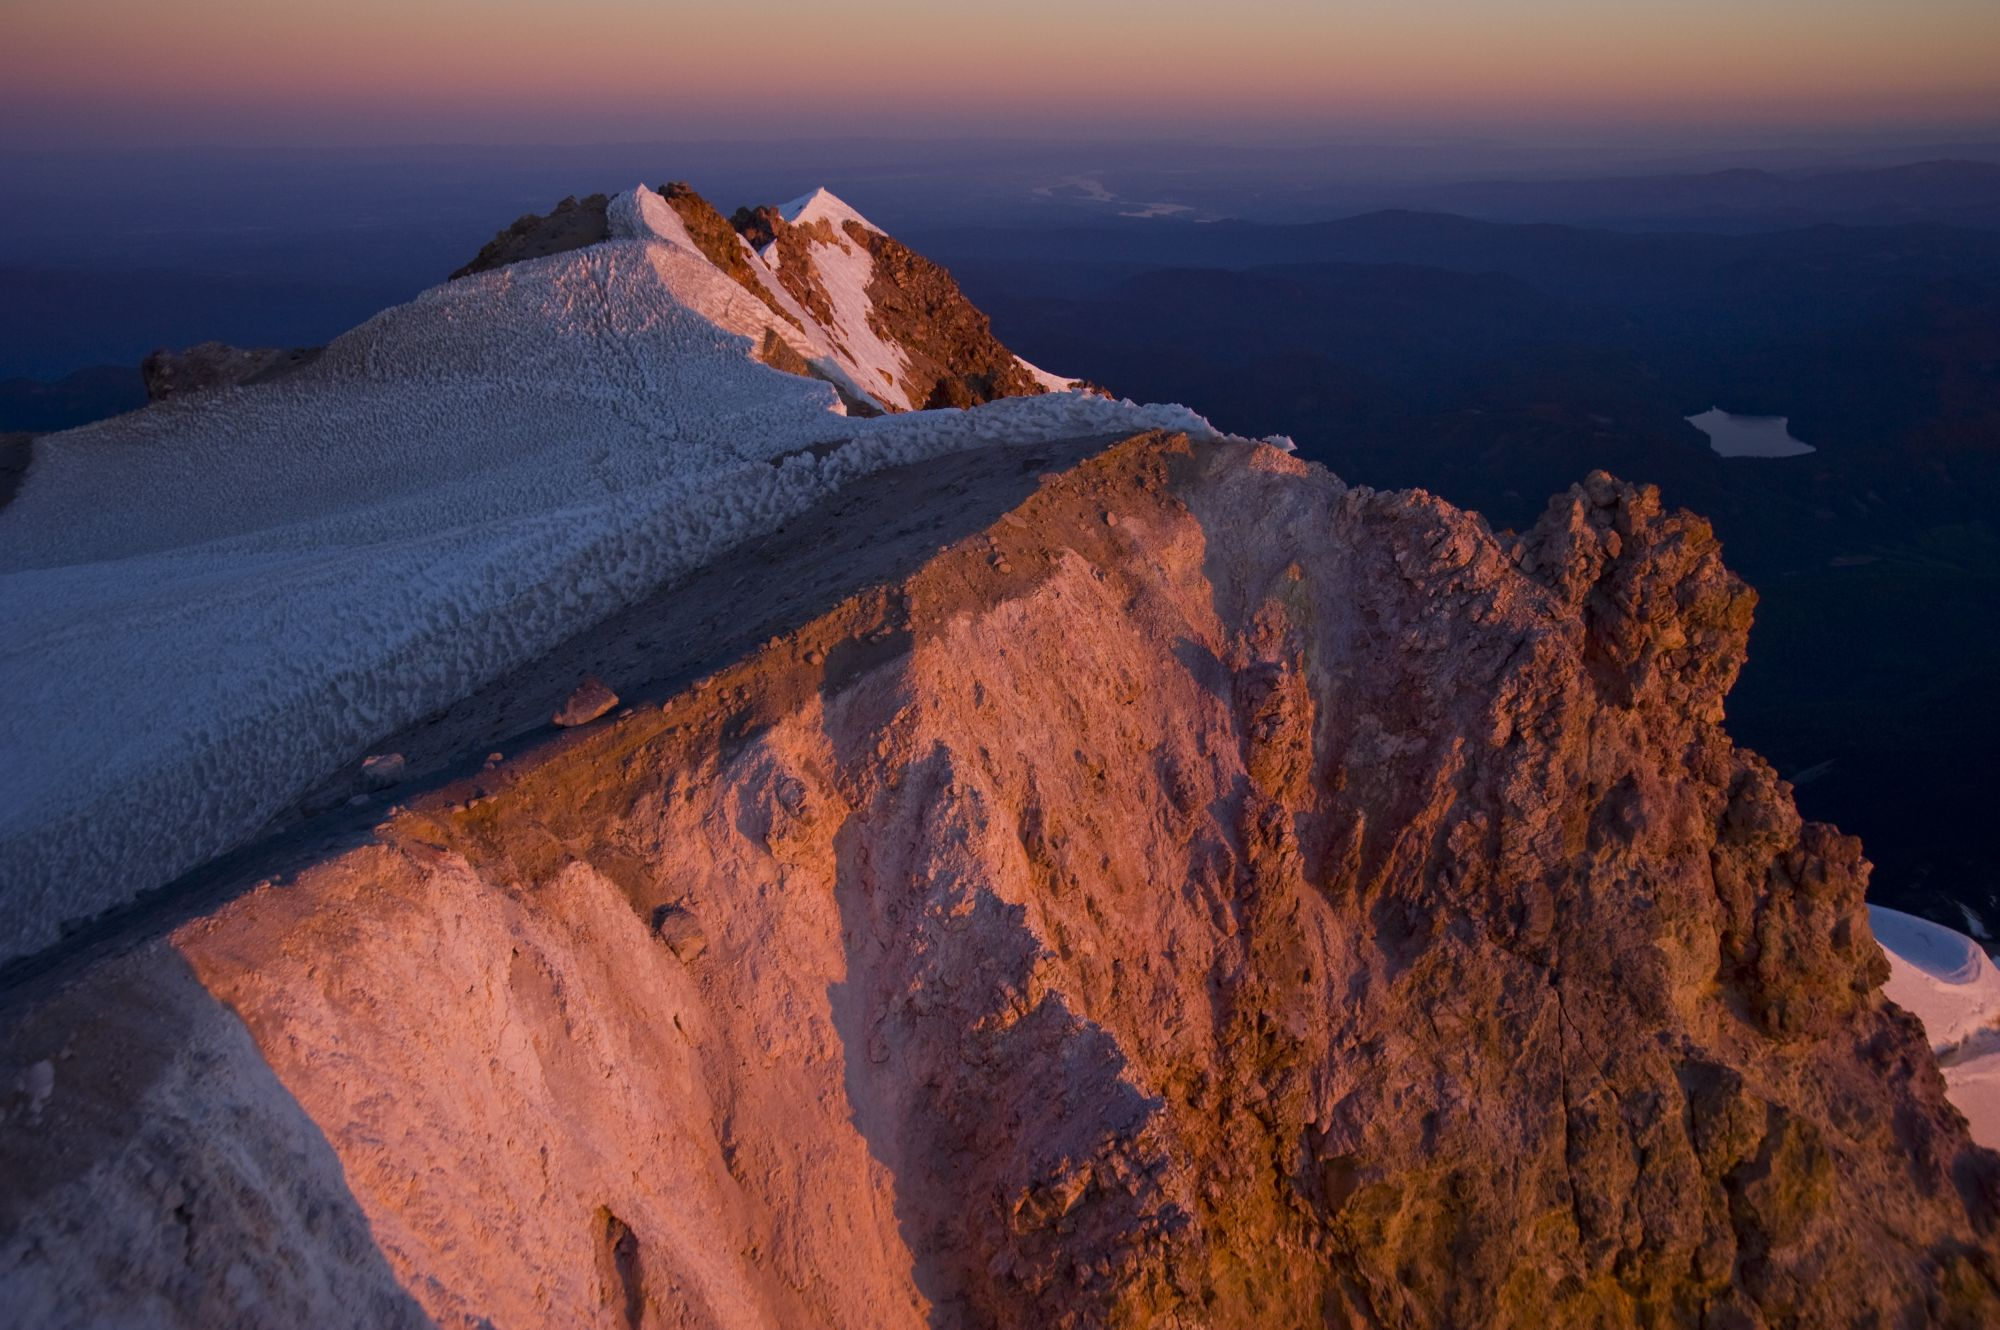 Mt. Hood summit ridge with Columbia river in the distance.  Photo by Peter Marbach